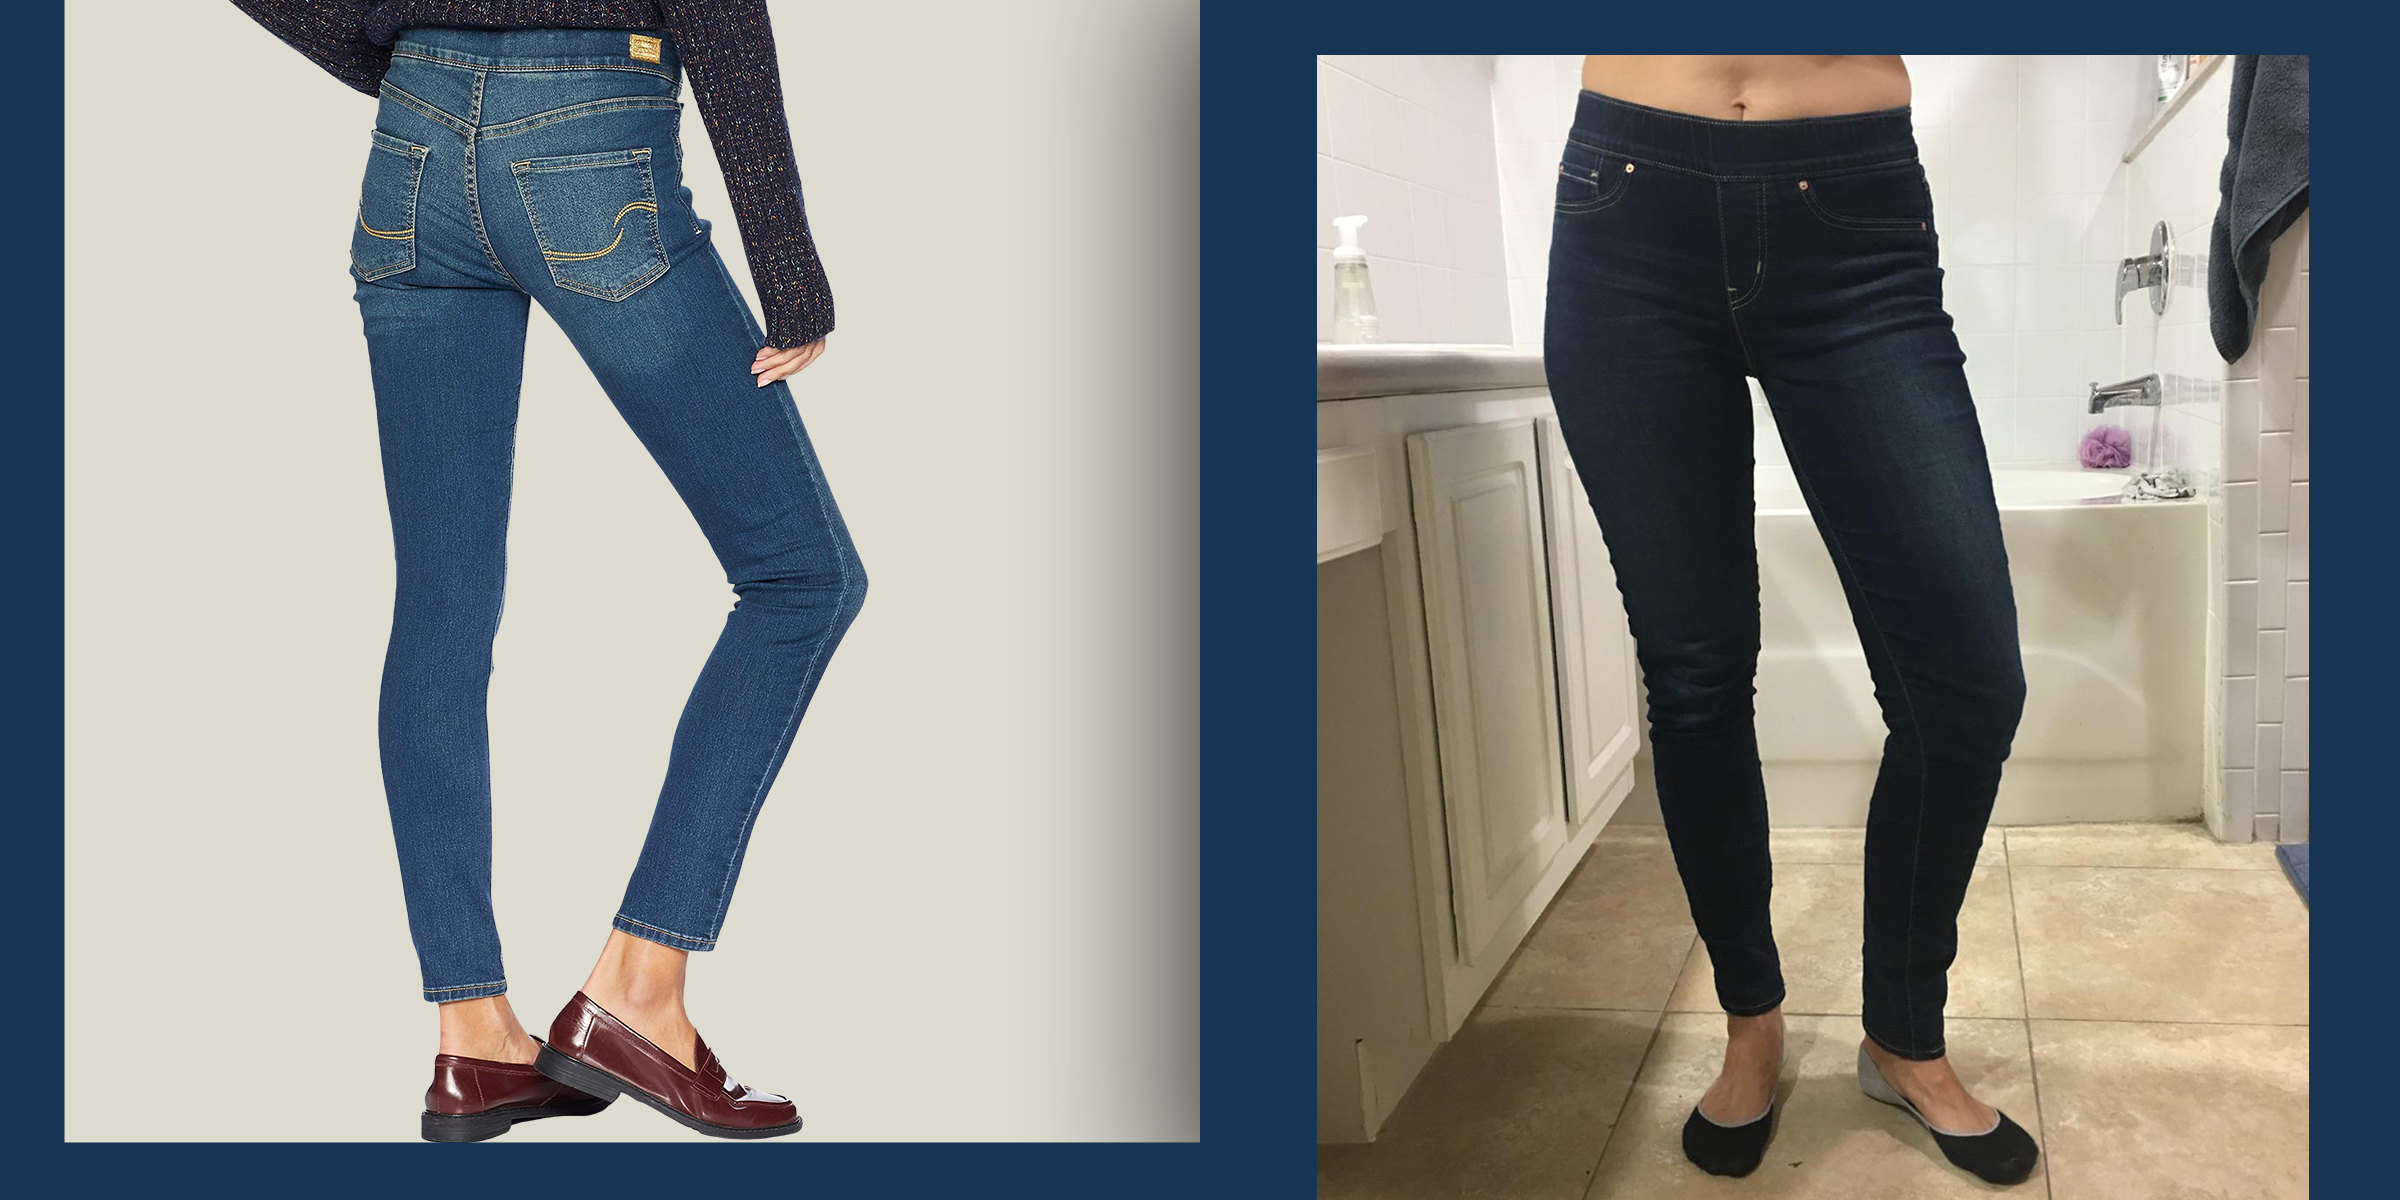 shopping preview of autumn shoes People love these slimming jeans on Amazon